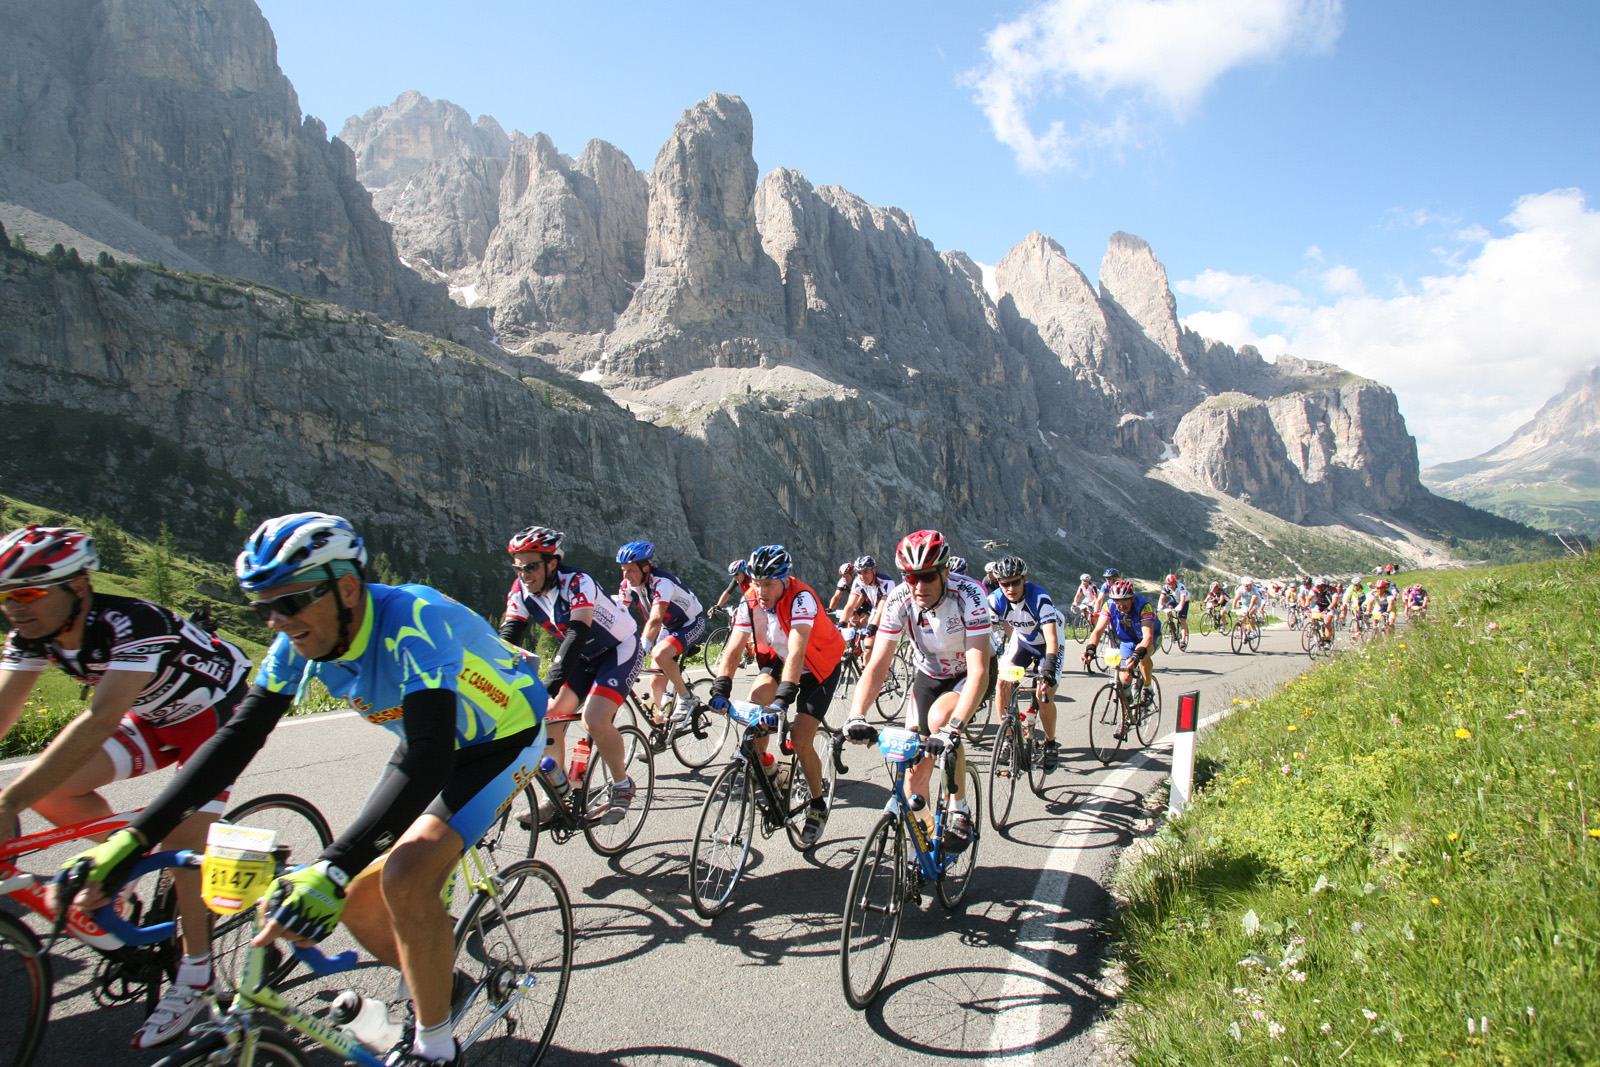 Bicycle Touring and Other Outdoor Activities In Italy